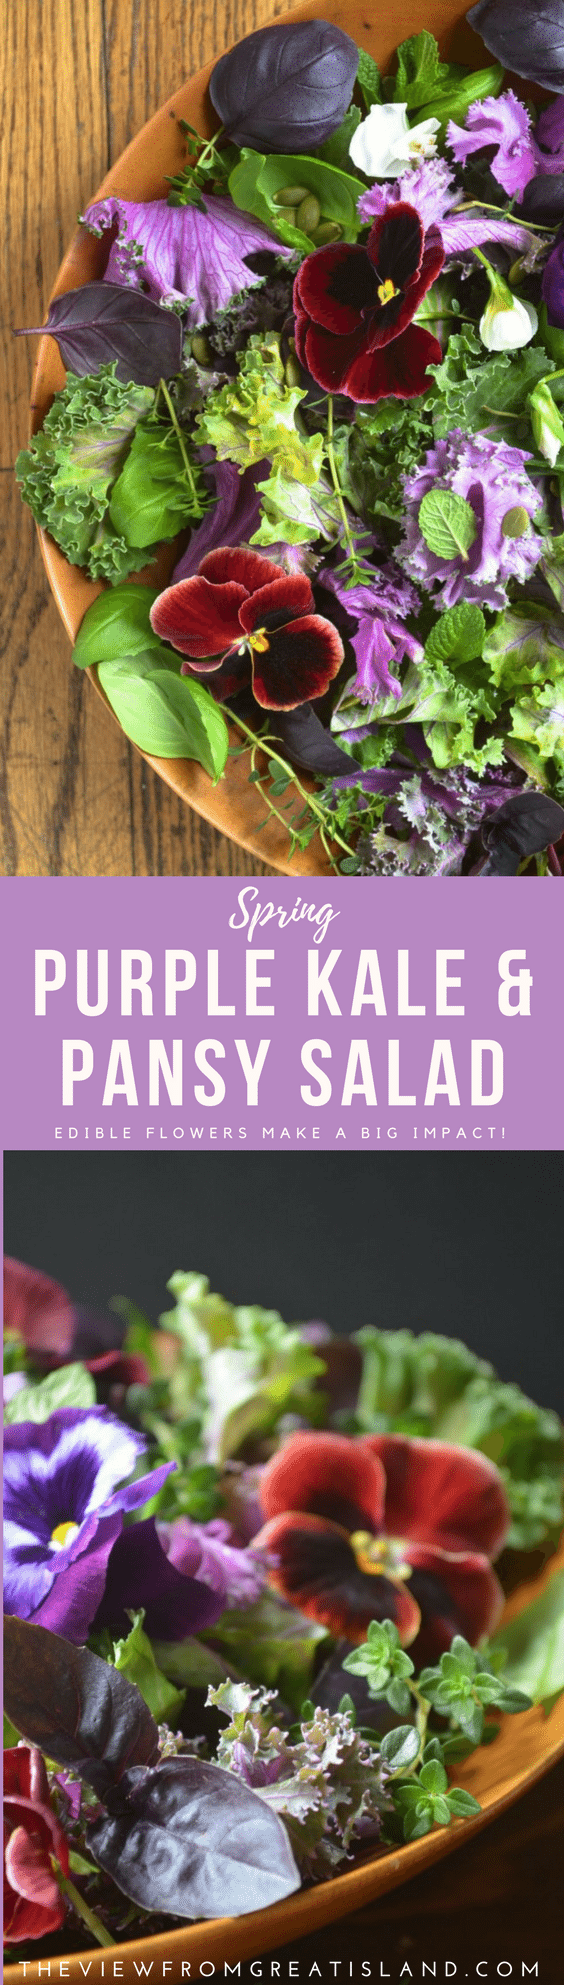 Purple Kale and Pansy Salad ~ edible flowers like colorful pansies can turn a salad from so-s0 to sensational. Use them as a garnish on all kinds of dishes this spring! #edilbleflowers #flowers #pansies #kalesalad #springsalad #easter #mothersday #healthy #kale #purplekale #rainbow